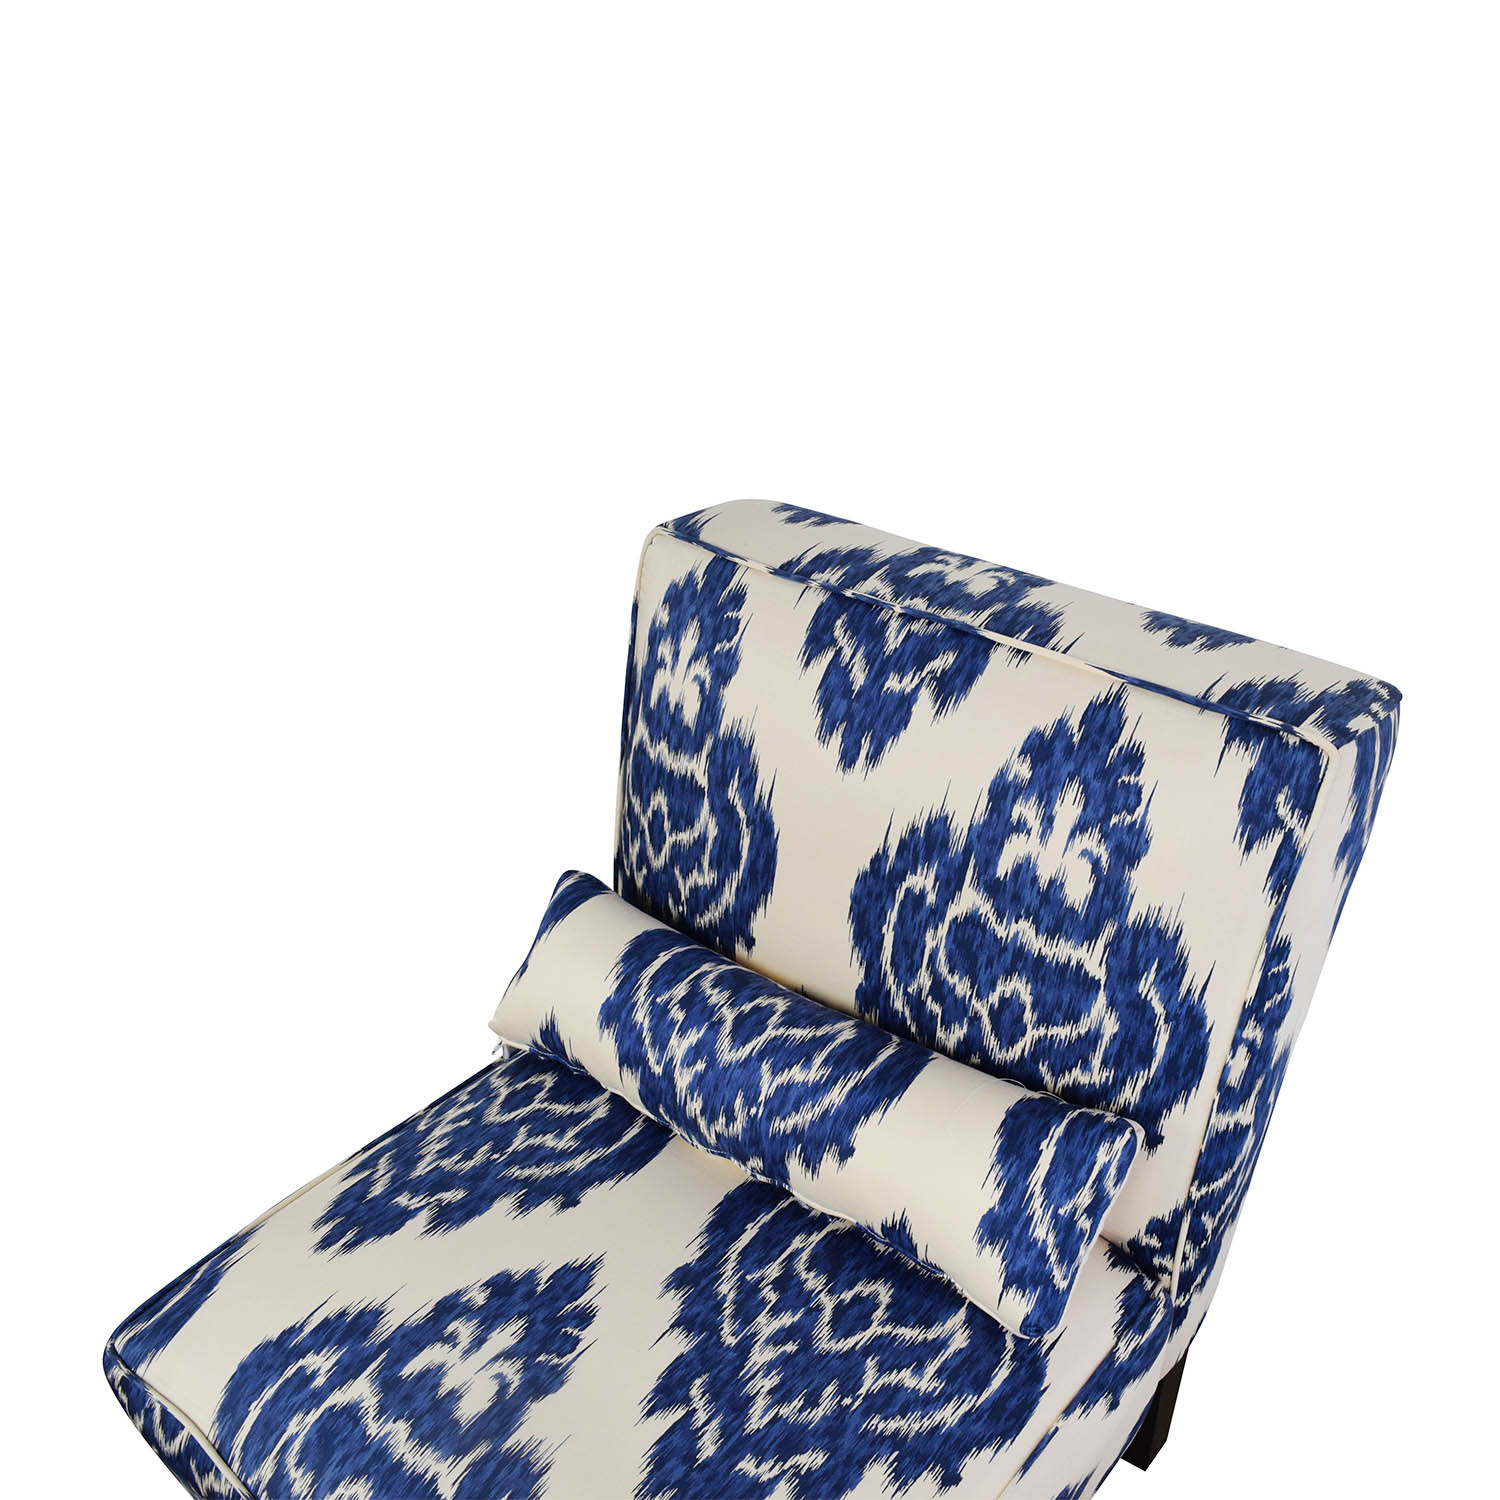 Fantastic 52 Off Overstock Overstock Blue And White Accent Chair Chairs Machost Co Dining Chair Design Ideas Machostcouk